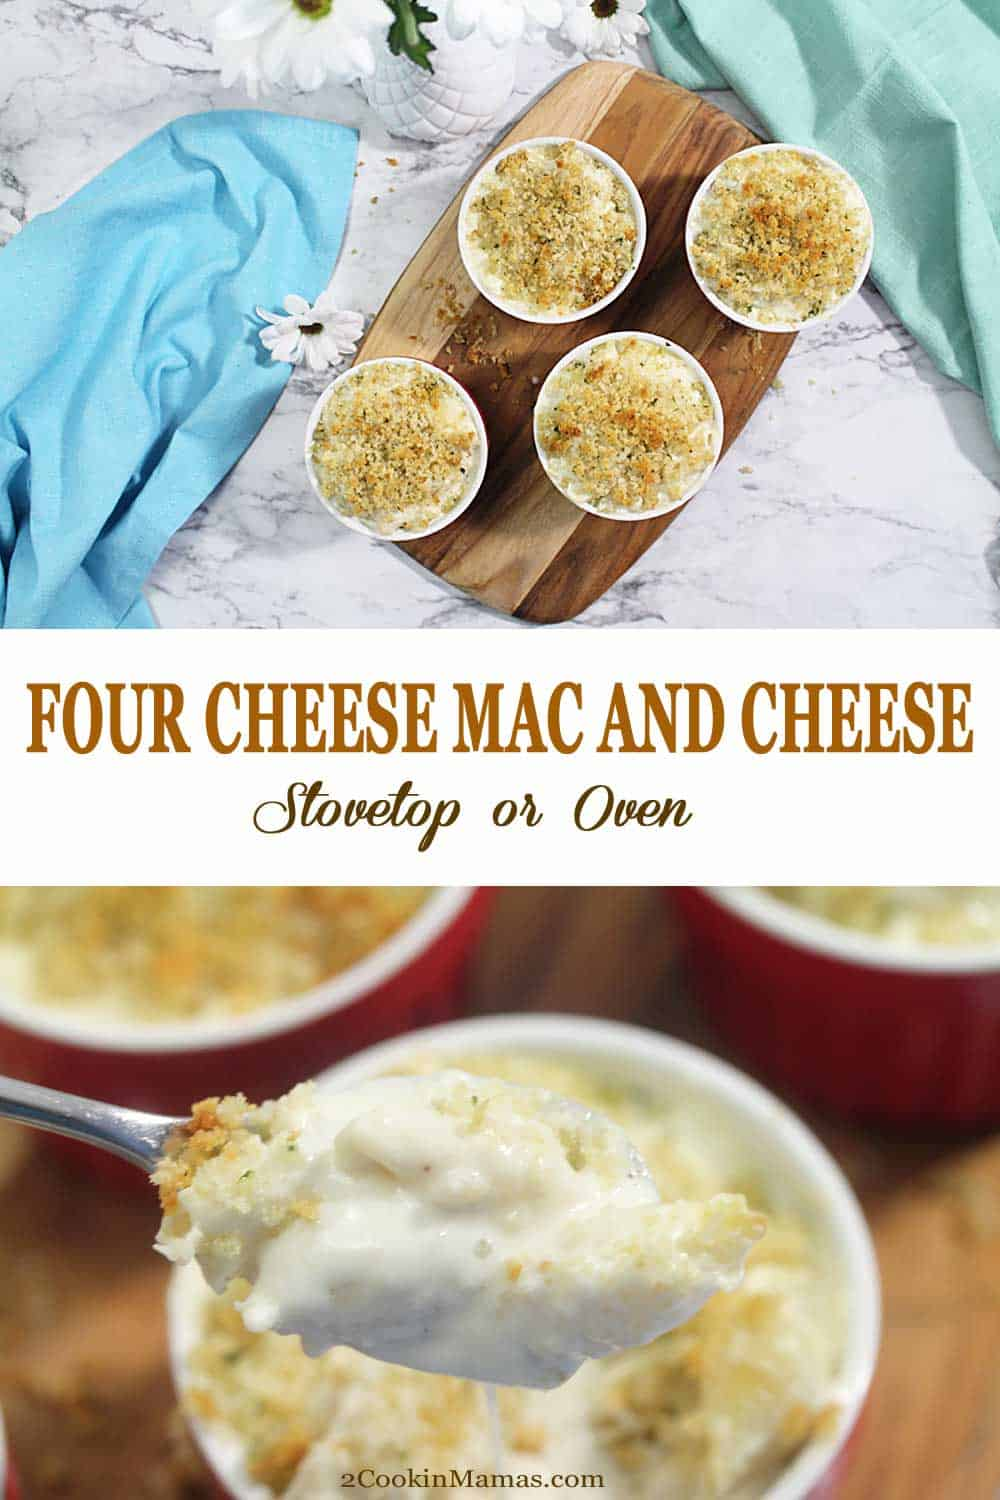 Stovetop Four Cheese Mac and Cheese | 2 Cookin Mamas Jazz up your stovetop mac and cheese with this four cheese gourmet version that's both creamy and rich. It's quick, easy and delicious and works great as a main dish or a side. Love a crunchy buttery top? Pour it into ramekins and finish it off in the oven. I guarantee this will become a family favorite. #macandcheese #stovetop #fourcheese #recipe #baked #easy #homemade #creamy